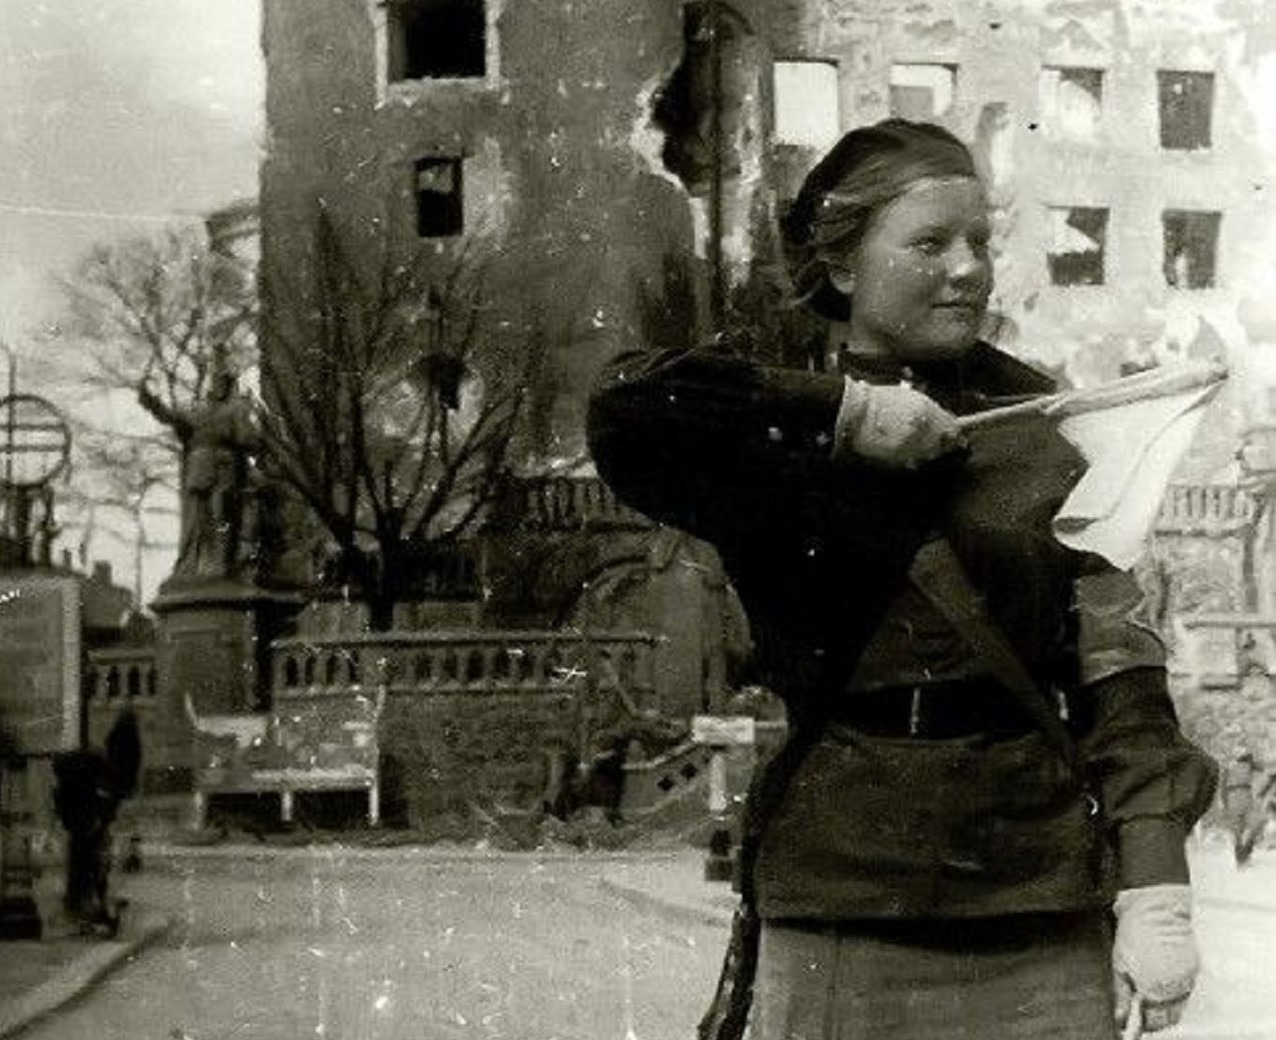 in this black and white photo you can see on the right a young woman, an auxiliary of the Red Army; she puts in her hand a flag.